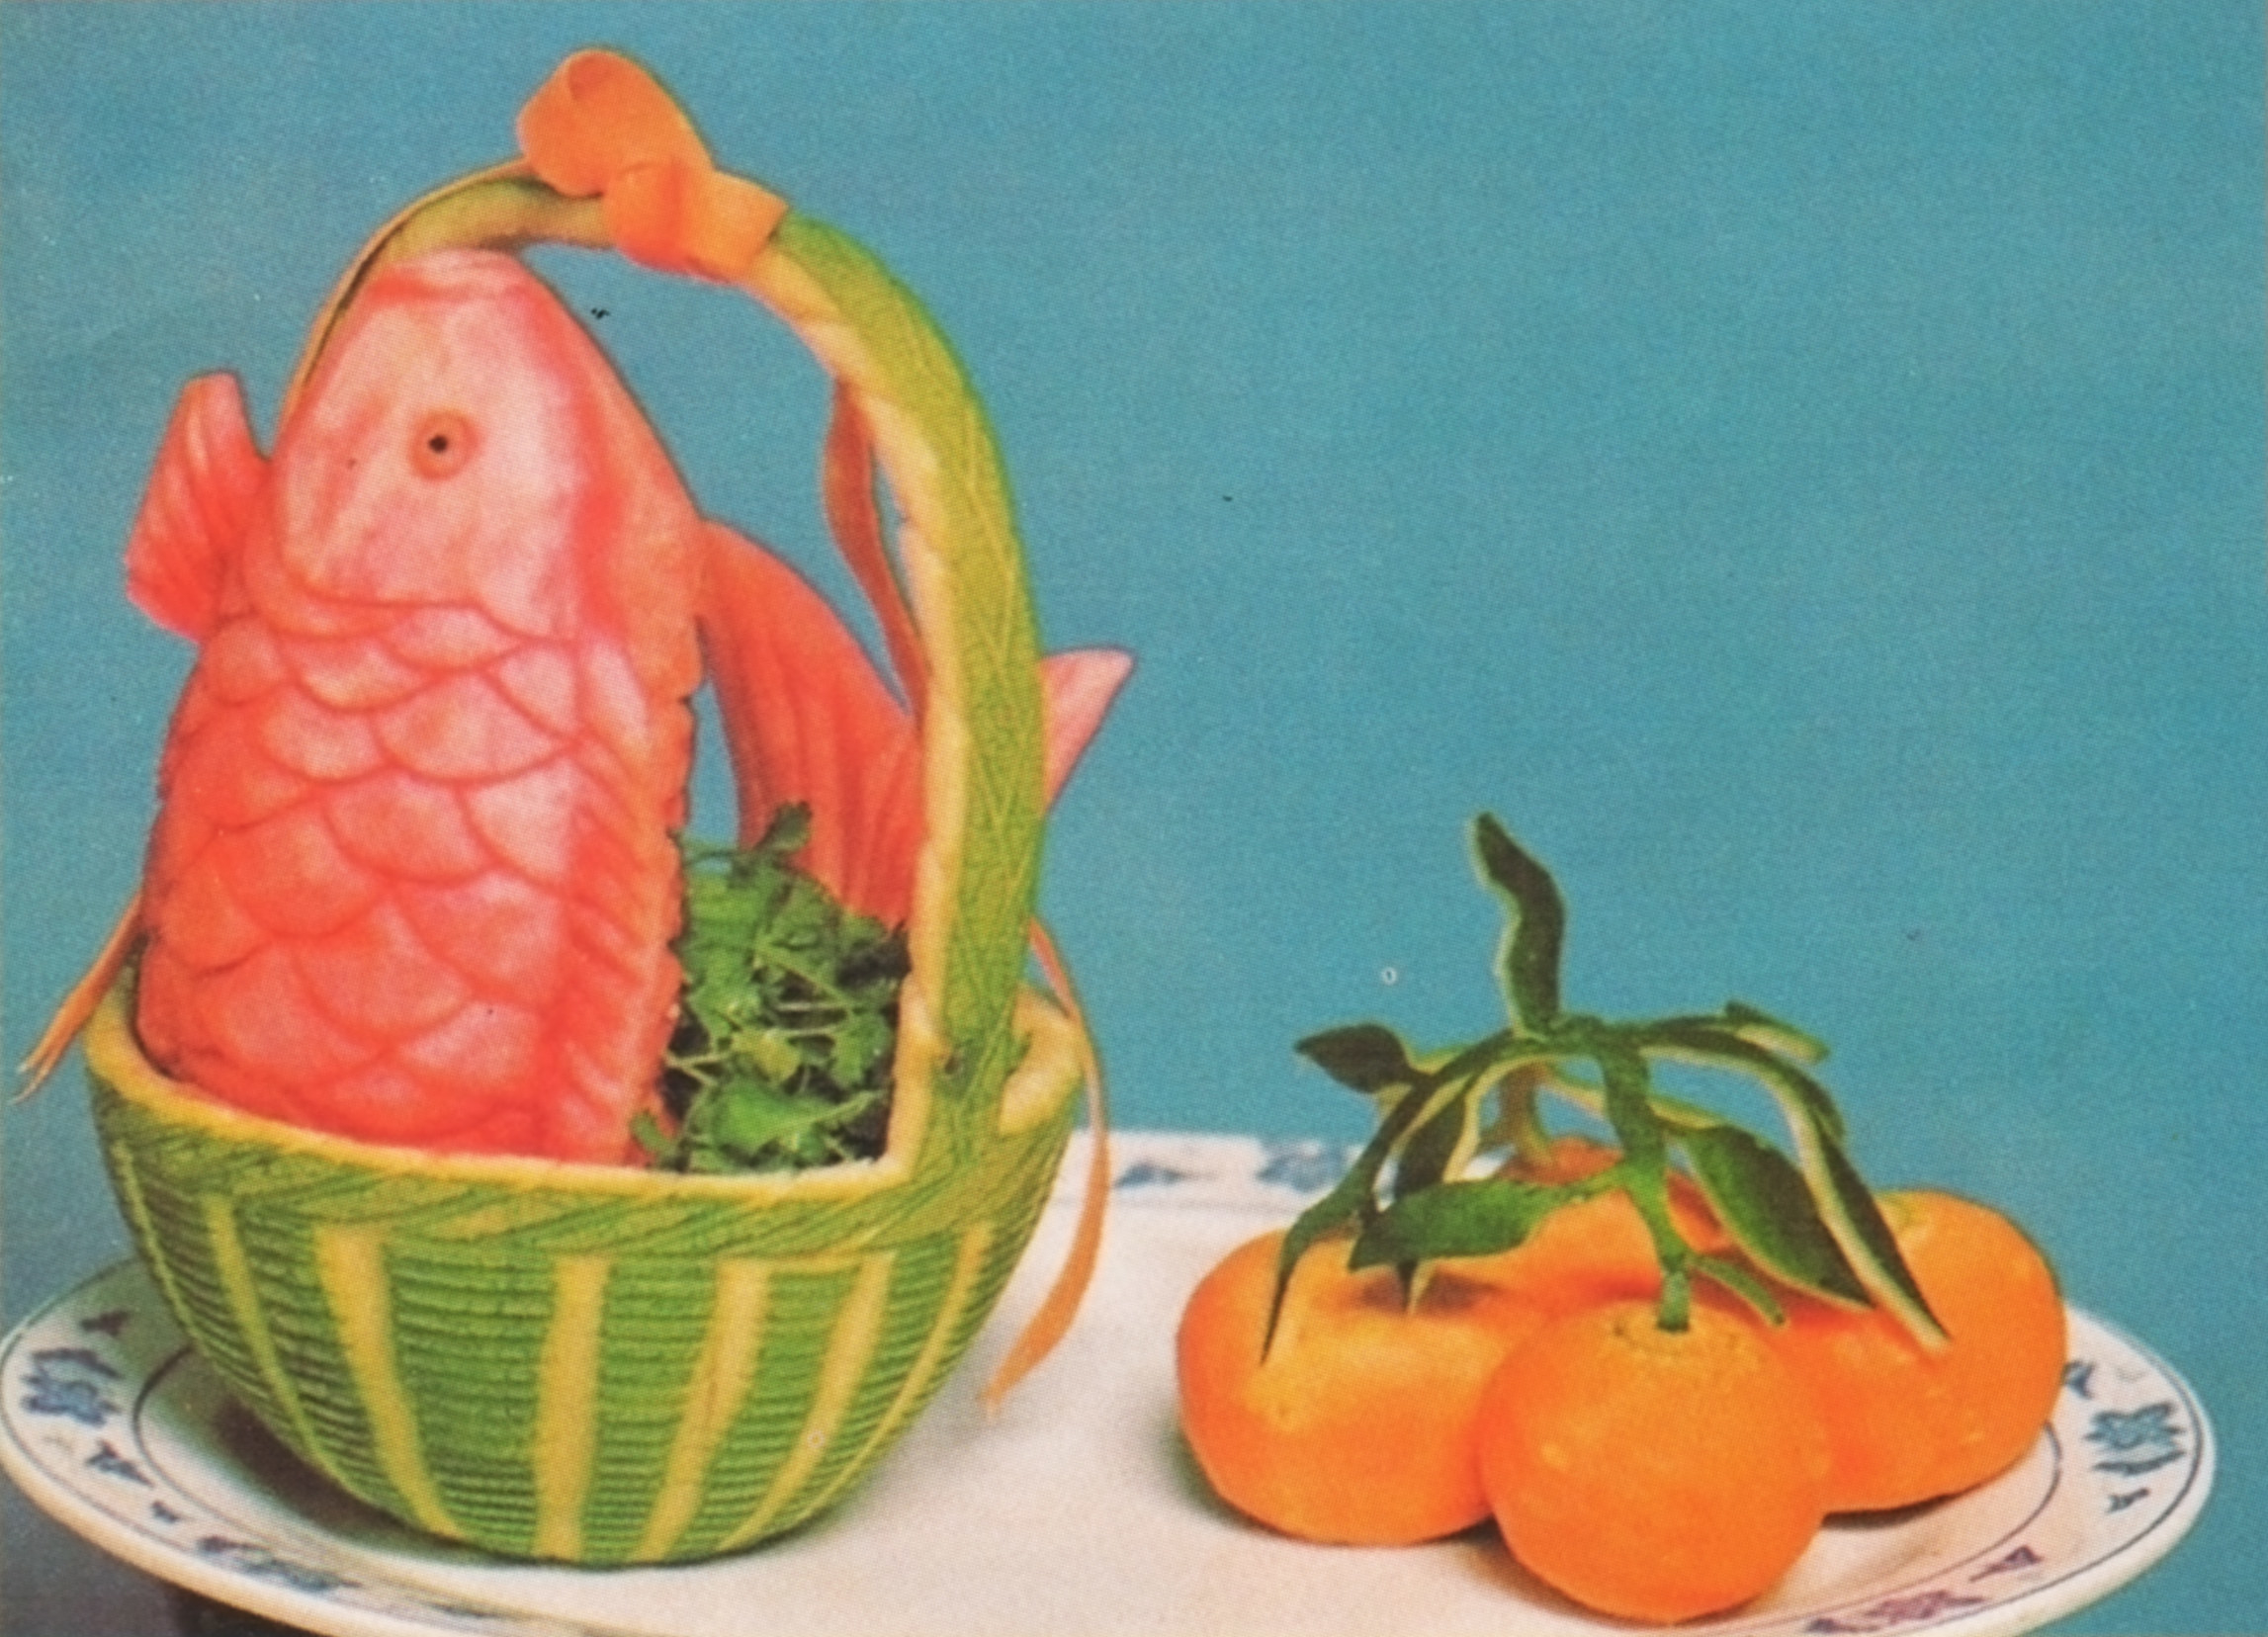 A fish in a basket made of  a carved gourd with oranges next to it on a plate